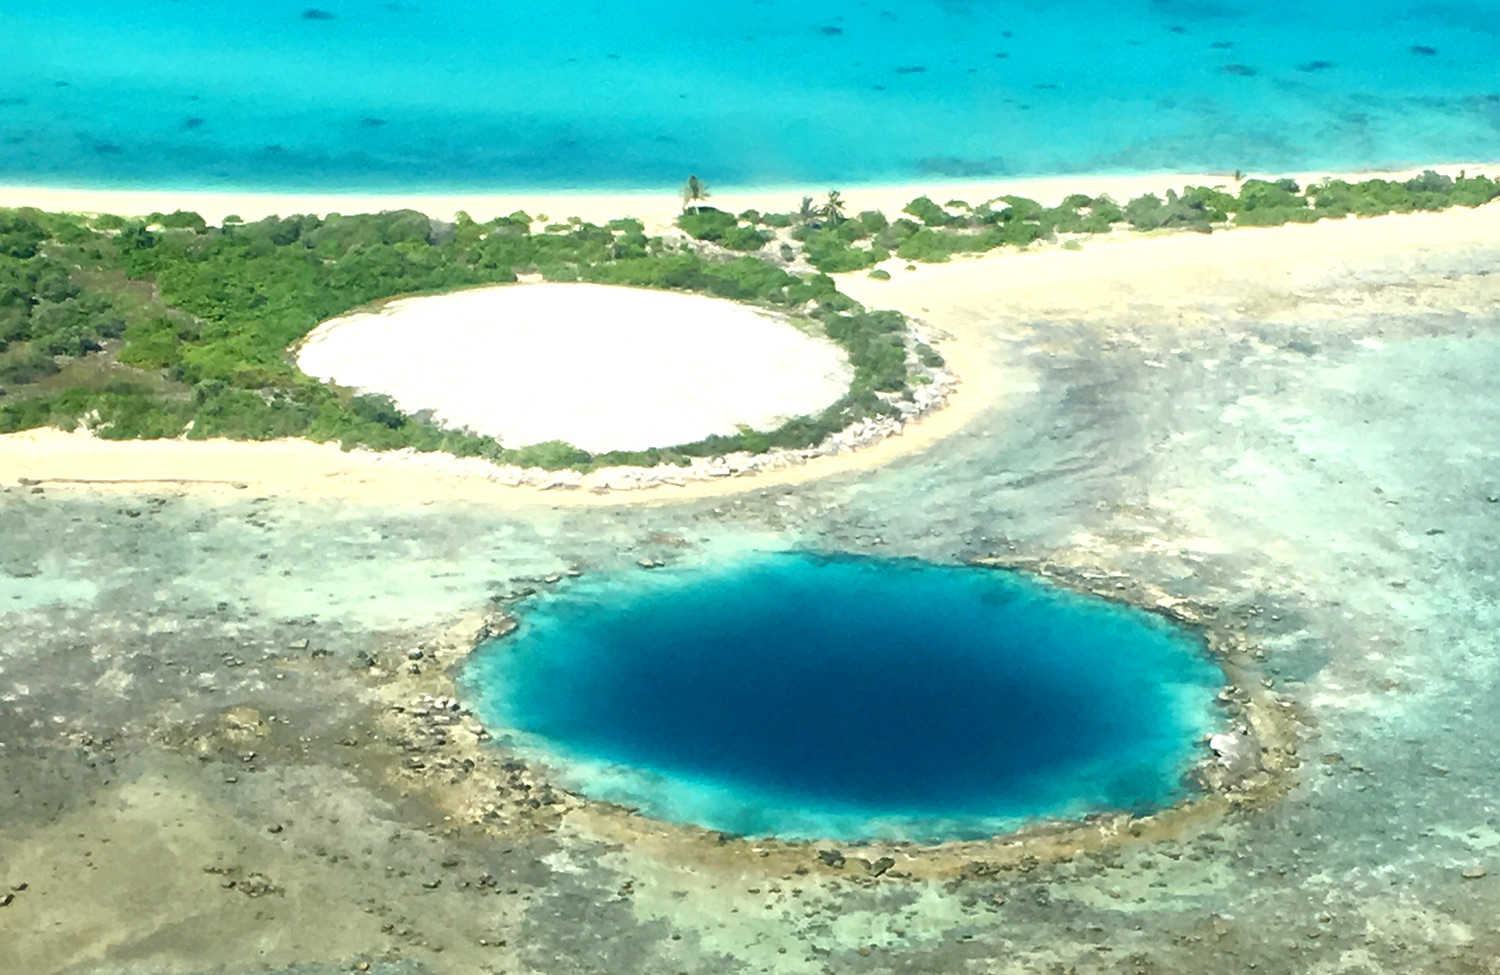 A pair of twin blast craters from the Cactus, left, and Lacrosse nuclear weapons tests on Enewetak Atoll are visible from the air. The Cactus crater was filled with debris and capped with concrete.